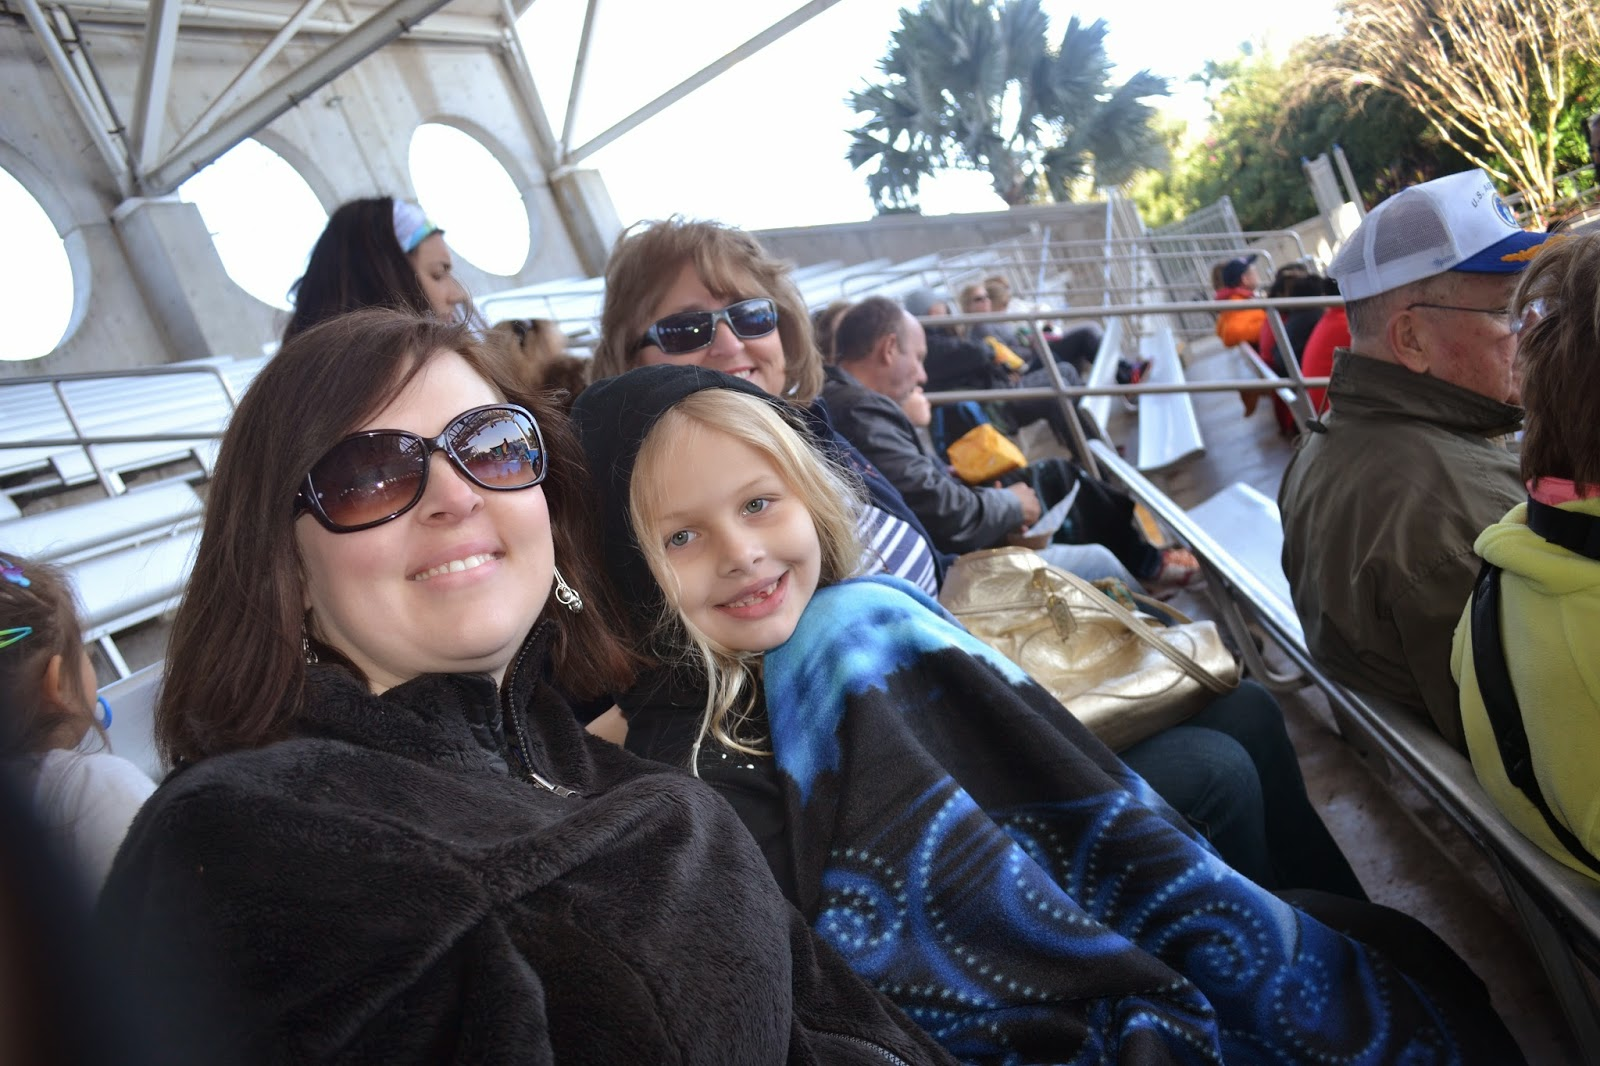 Freezing to death at Seaworld Orlando